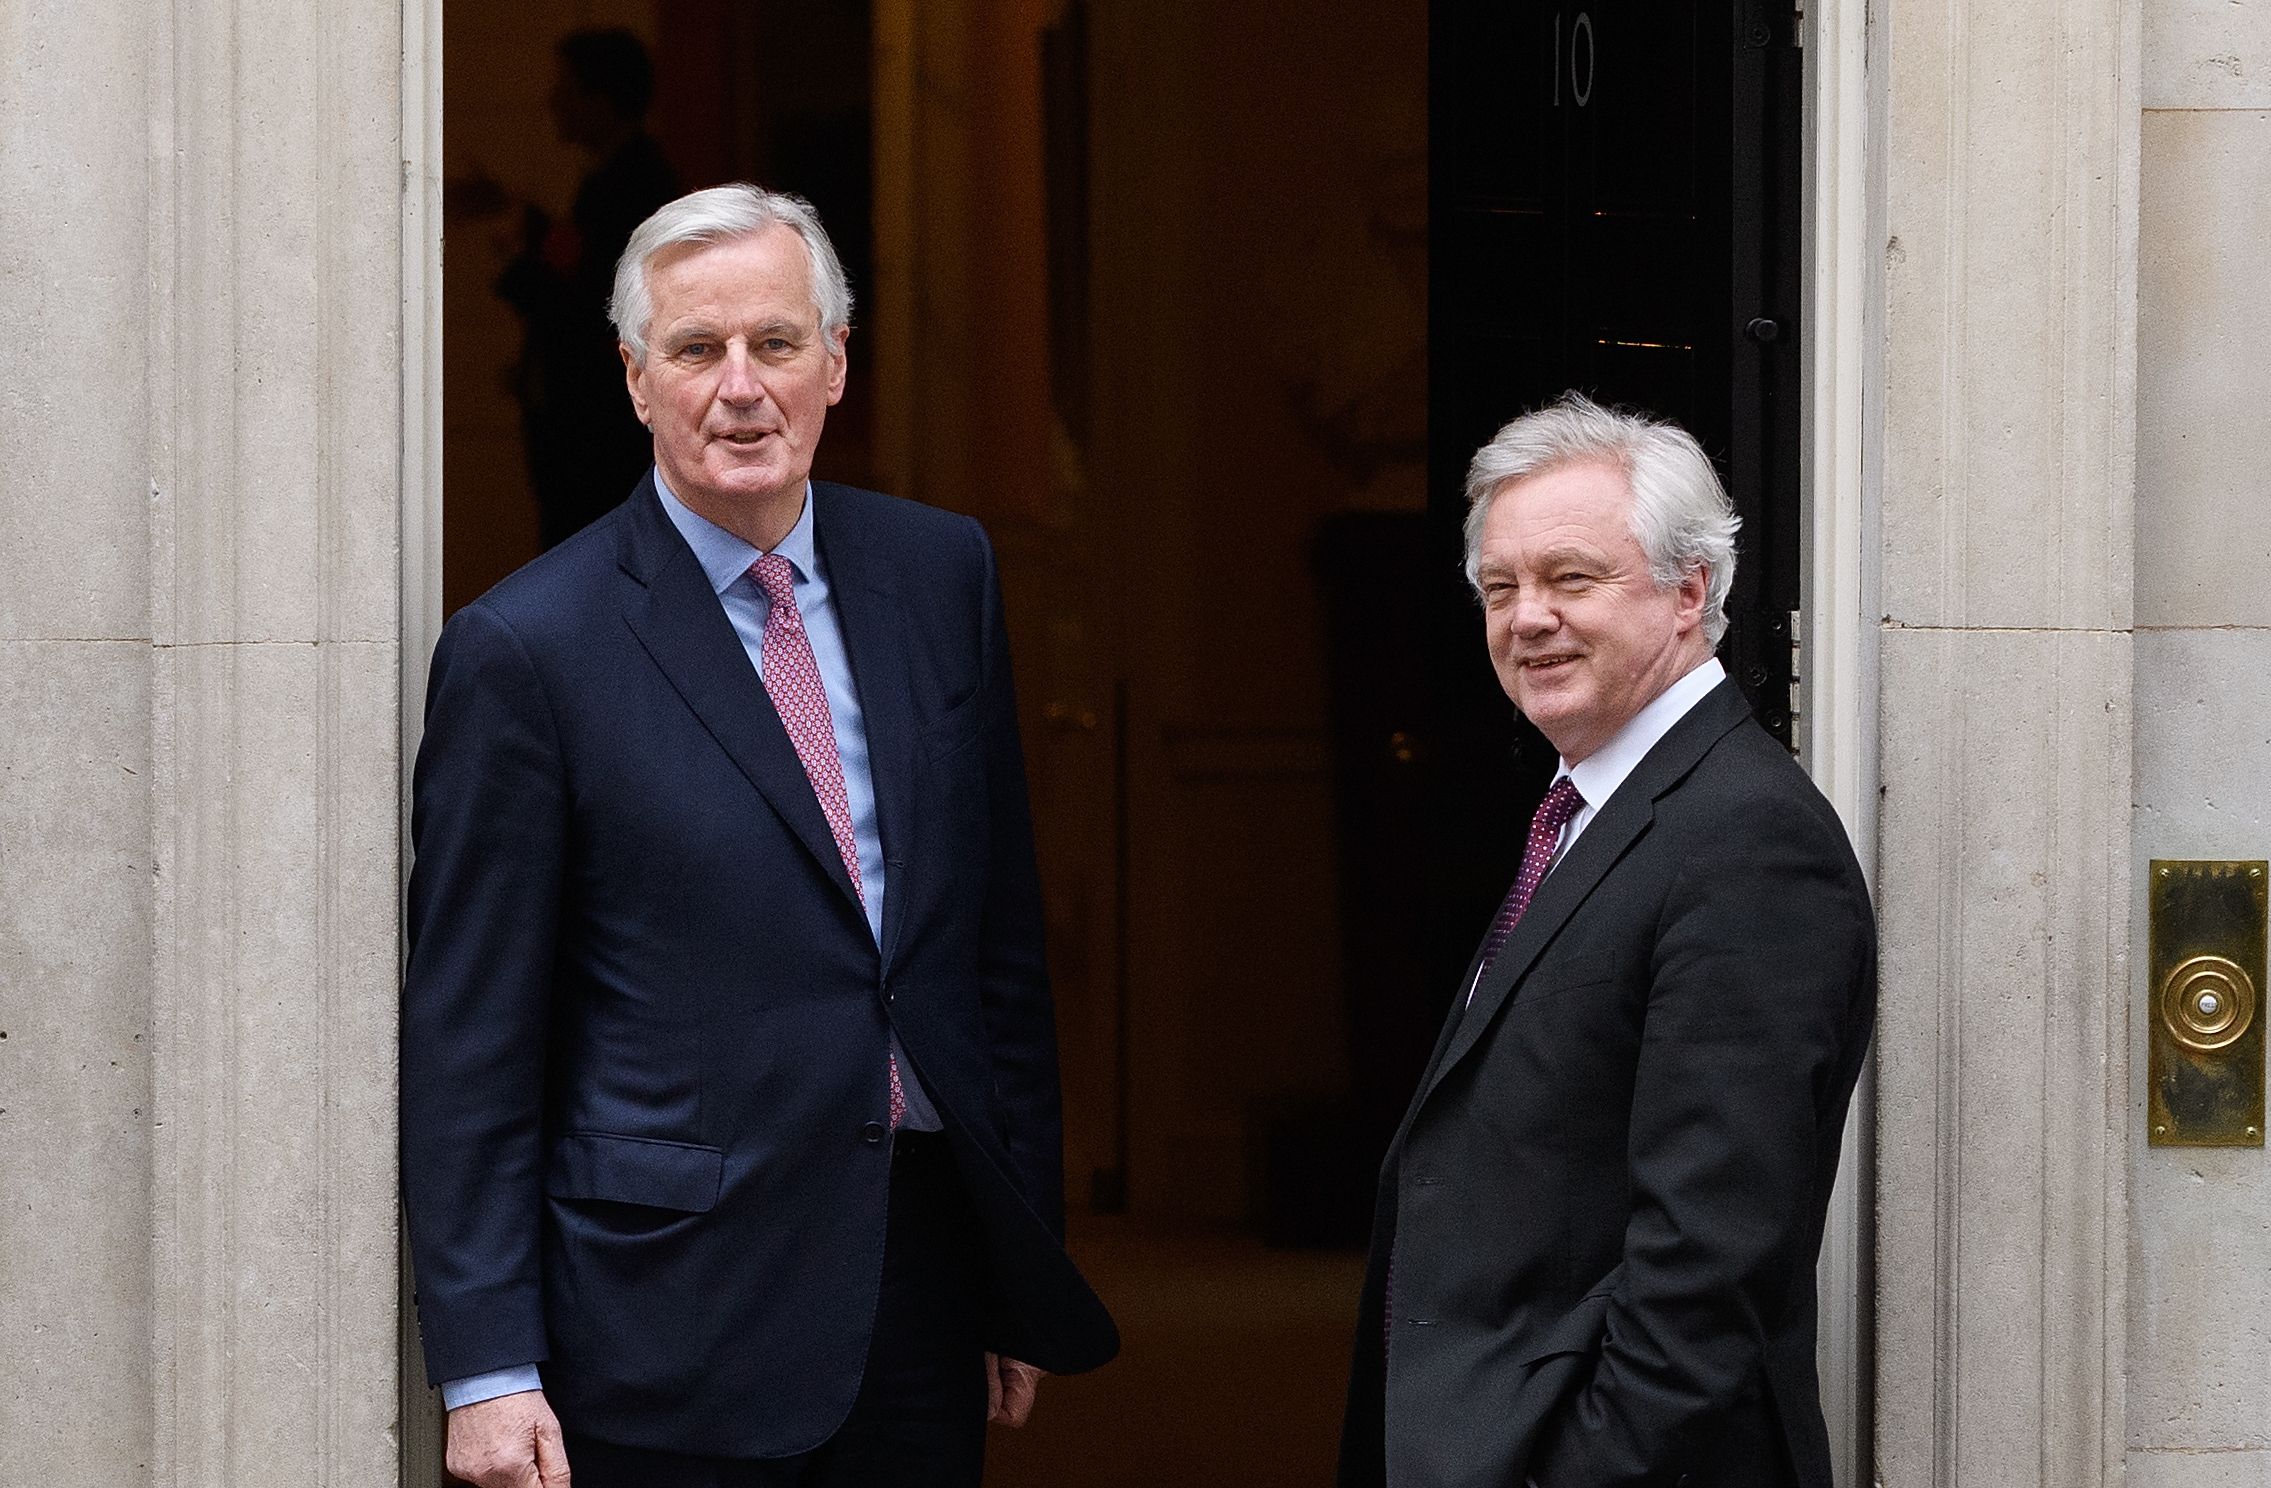 Michel Barnier (left) spoke of single market trade barriers but David Davis insisted Britain's position is 'perfectly clear'